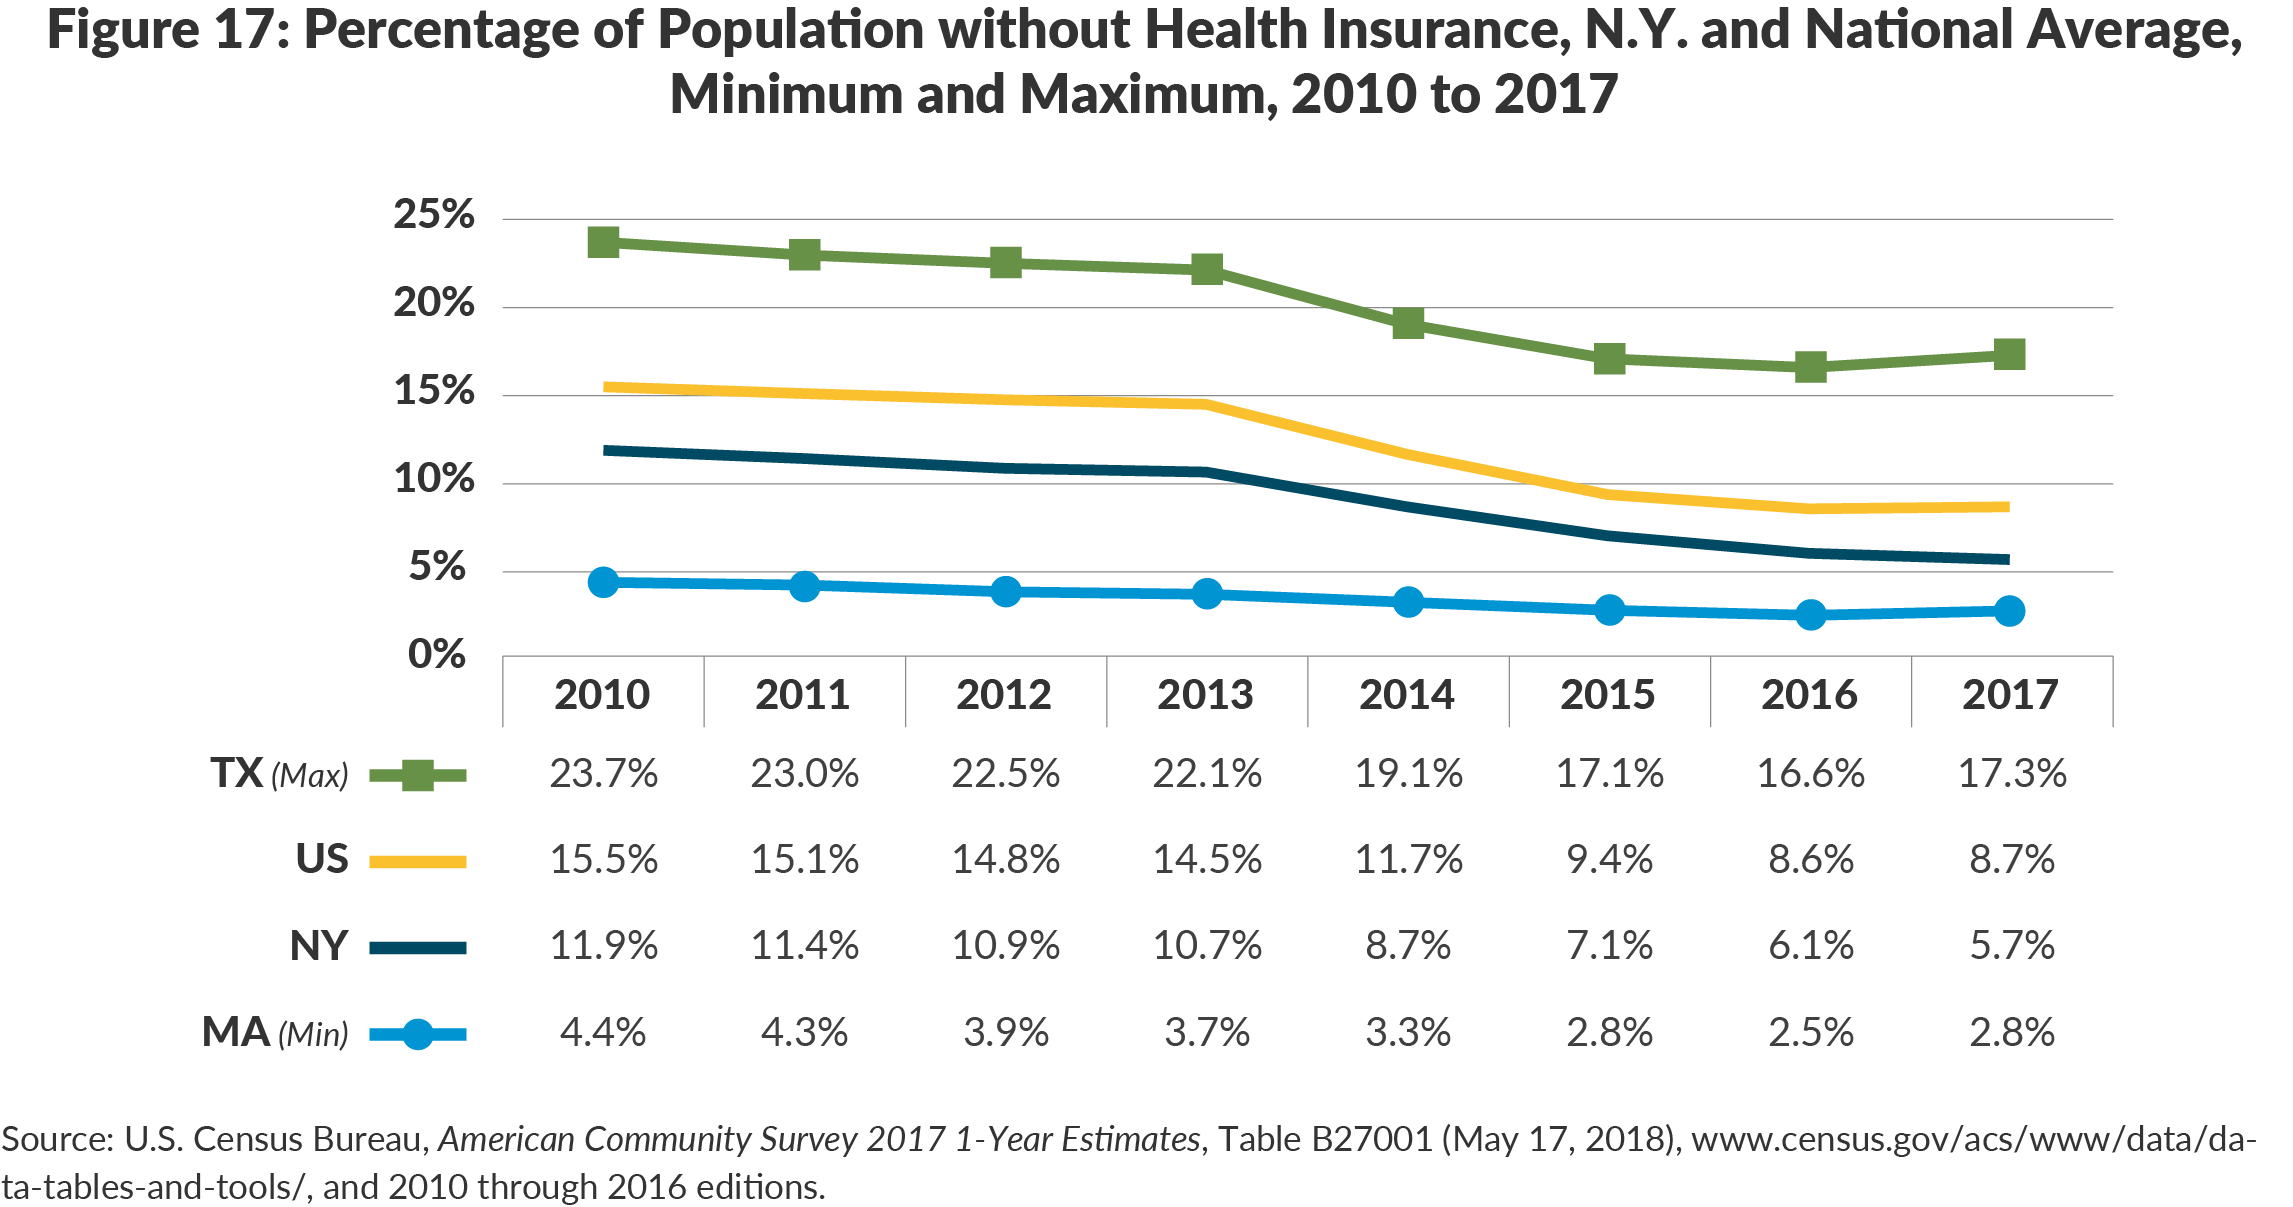 Figure 17: Percentage of Population without Health Insurance, N.Y. and National Average,Minimum and Maximum, 2010 to 2017